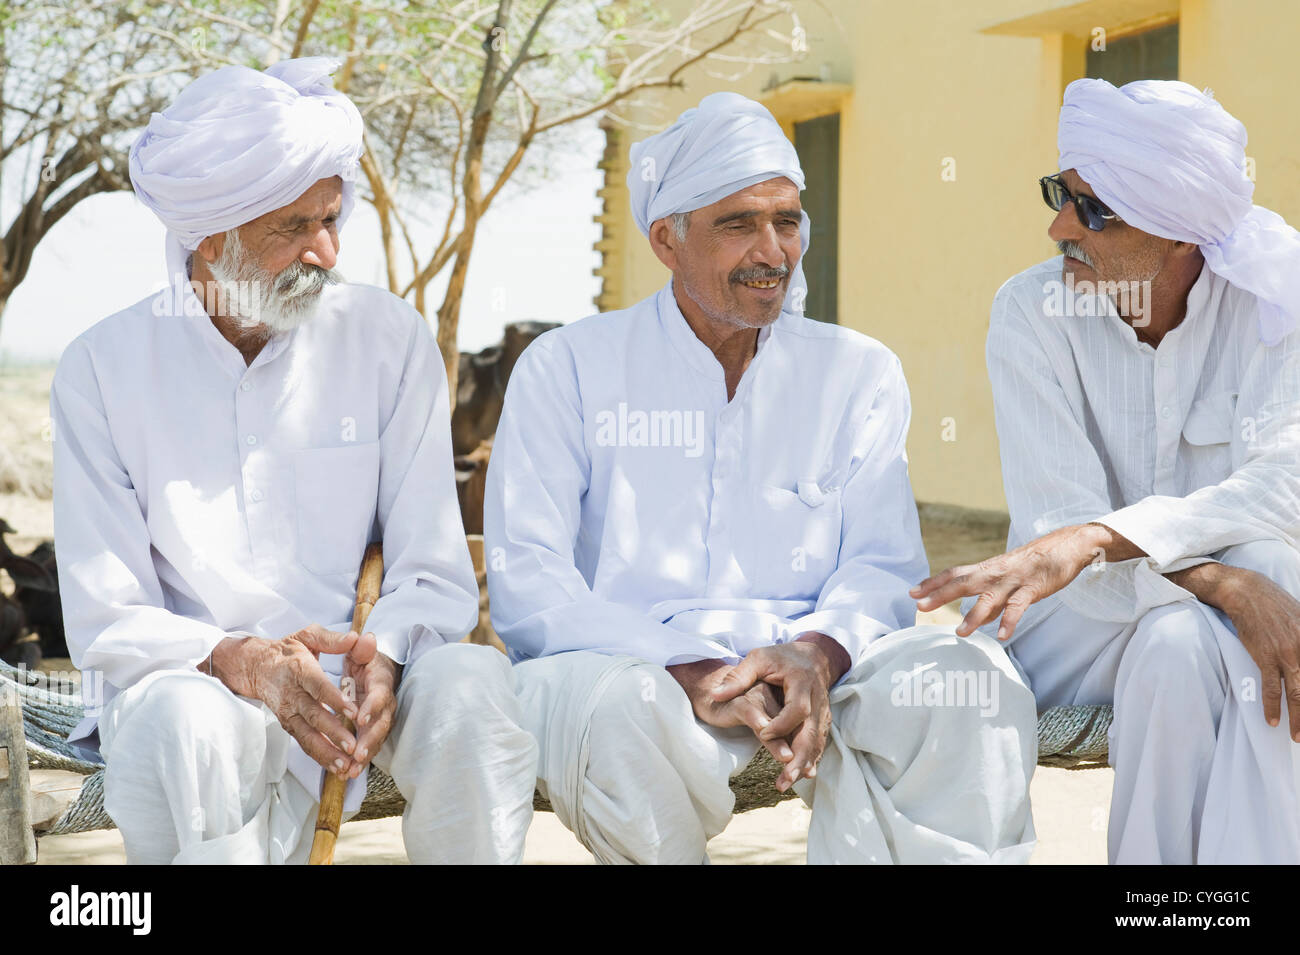 Three farmers sitting together and discussing - Stock Image